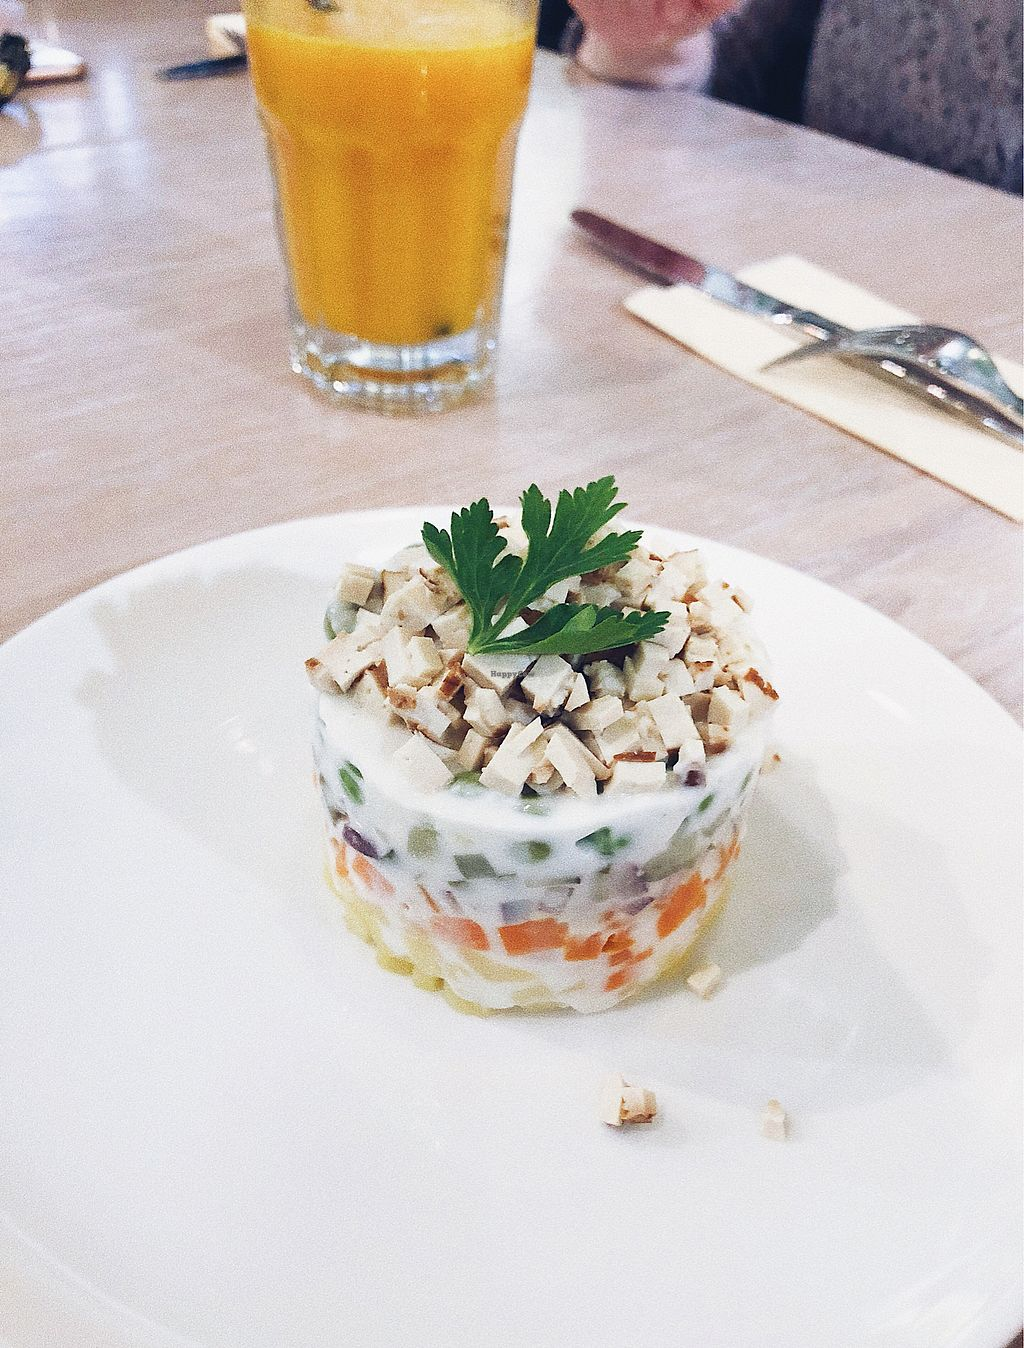 """Photo of Fresh - Bolshaya Dmitrovka  by <a href=""""/members/profile/Evgenia"""">Evgenia</a> <br/>Russia traditional salad - vegan version  <br/> December 30, 2017  - <a href='/contact/abuse/image/33756/340919'>Report</a>"""